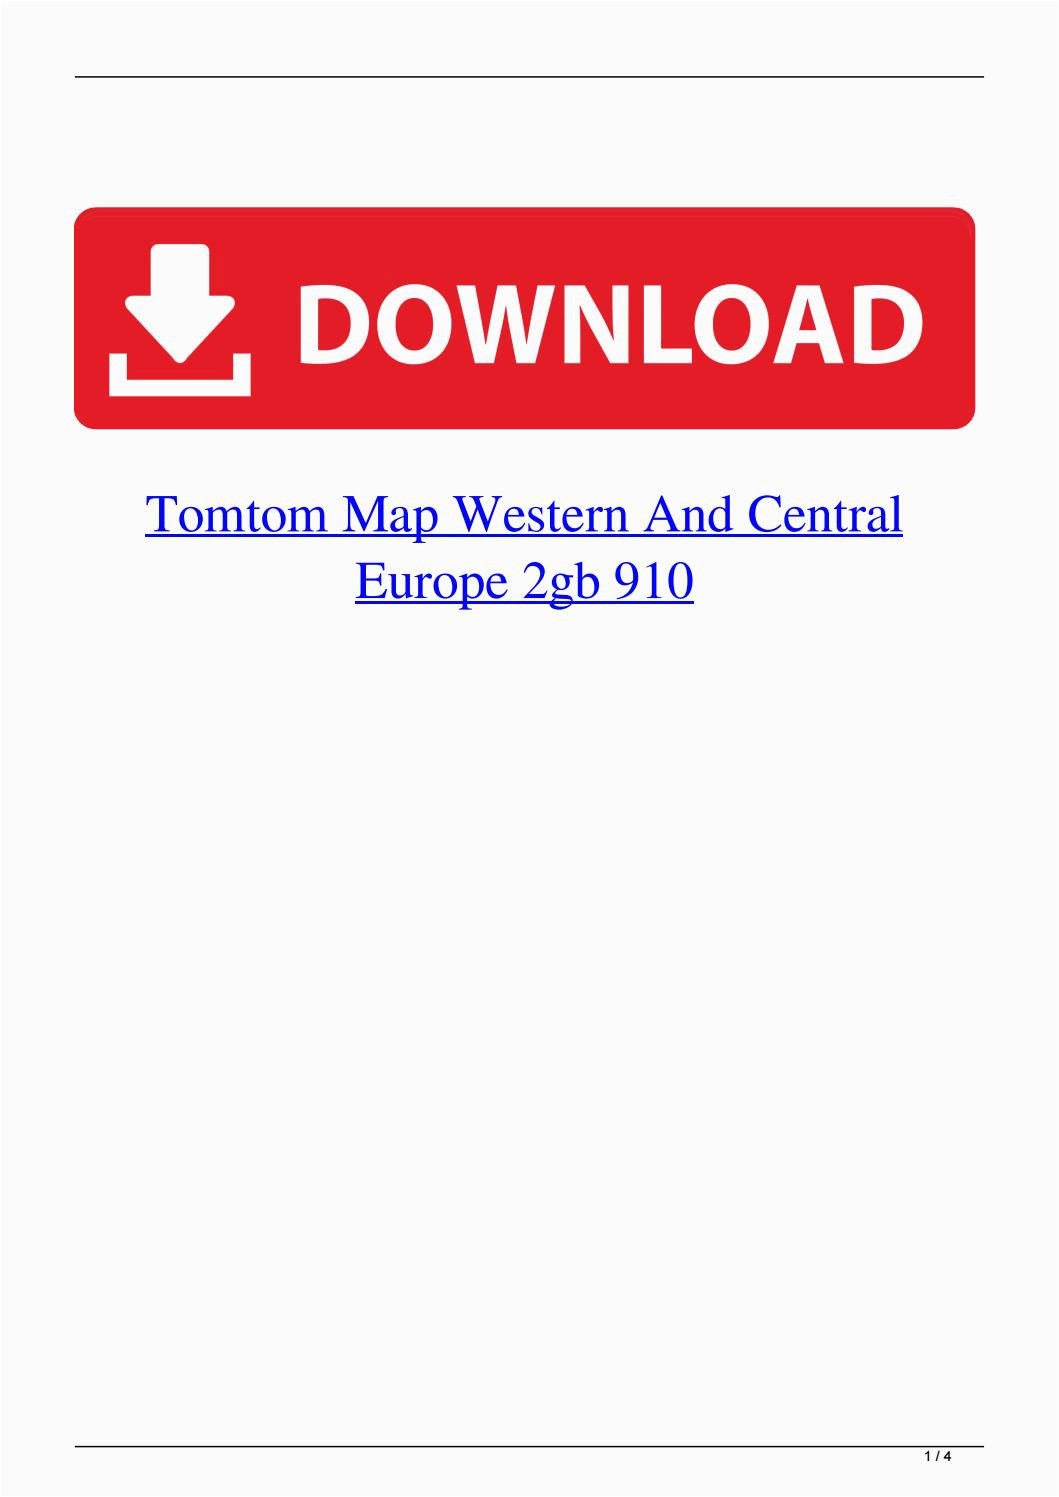 tomtom map western and central europe 2gb 910 by acbenlinkbe